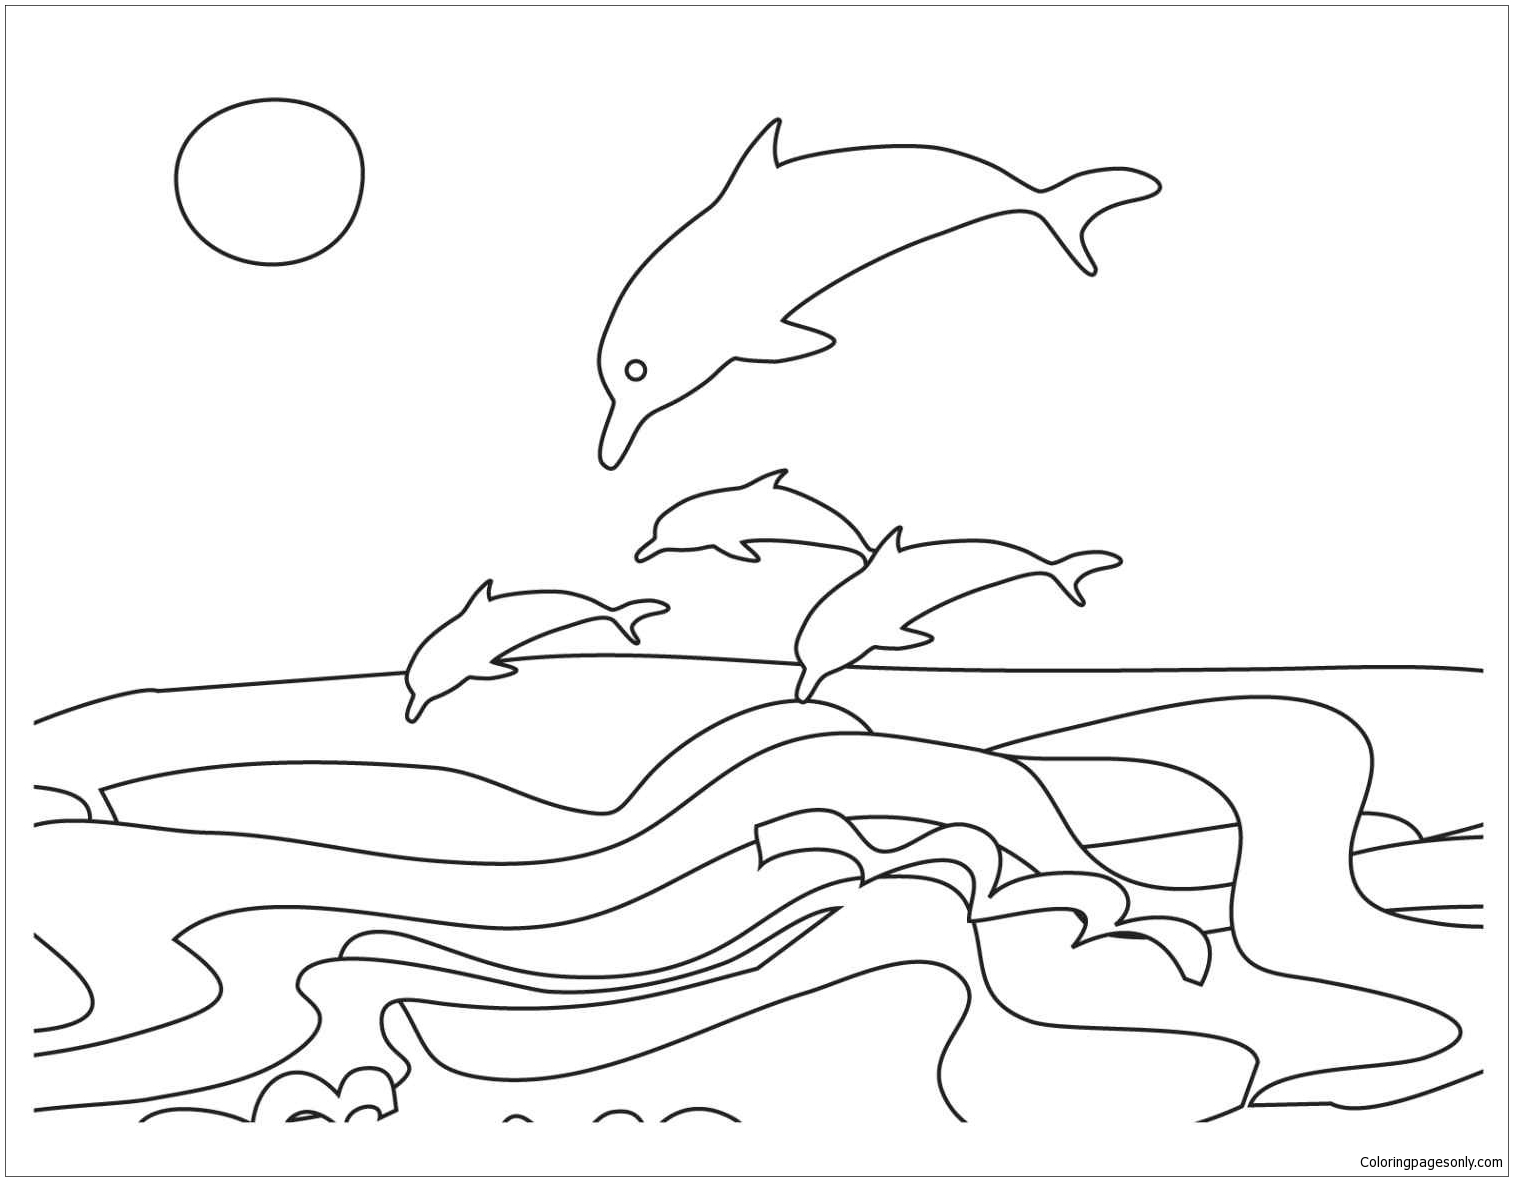 tropical pictures to color tropical island coloring pages coloring home pictures tropical to color